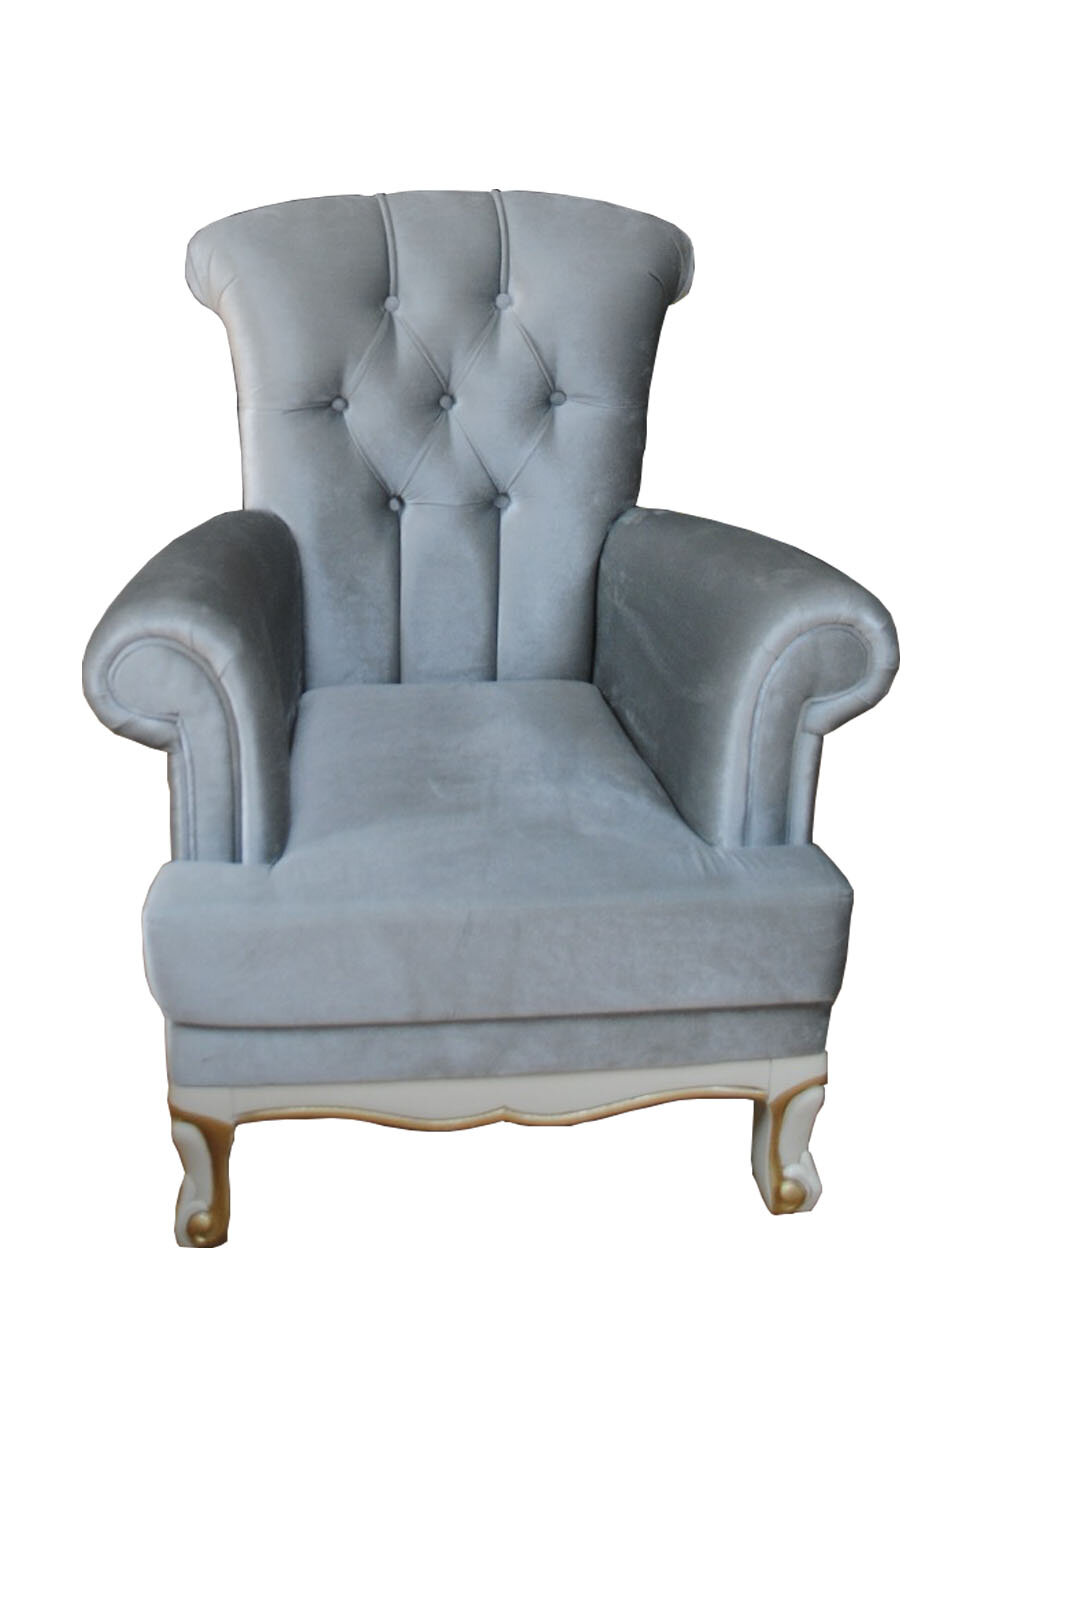 Flared Arm French Country Accent Chairs You Ll Love In 2021 Wayfair